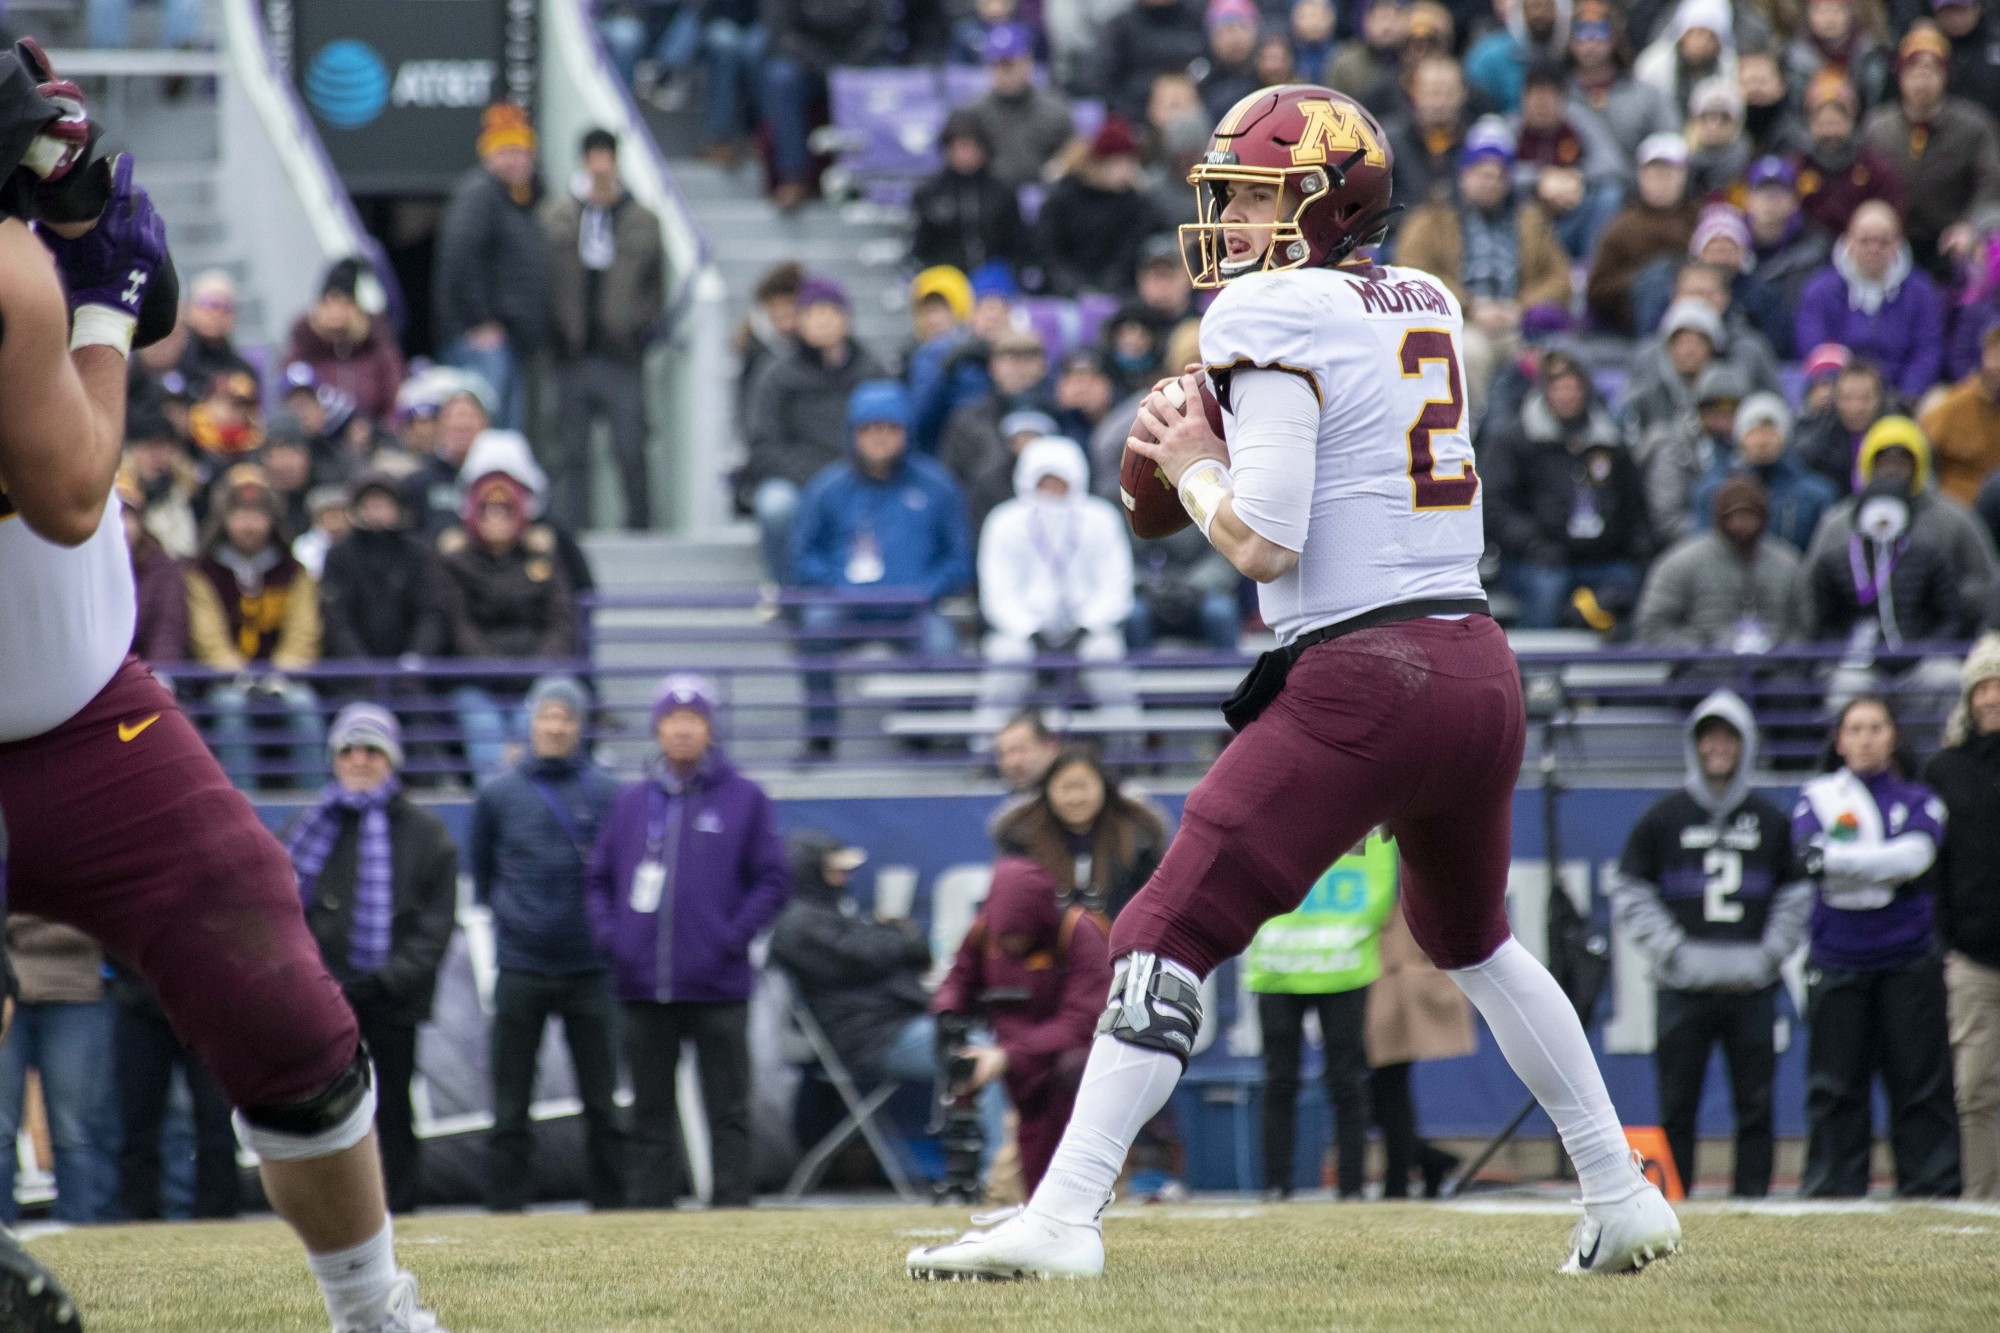 Quarterback Tanner Morgan looks to throw the ball at Ryan Field during the game against the Northwestern Wildcats on Saturday, Nov. 23. The Gophers earned a 38-22 victory bringing their record to 10-1.